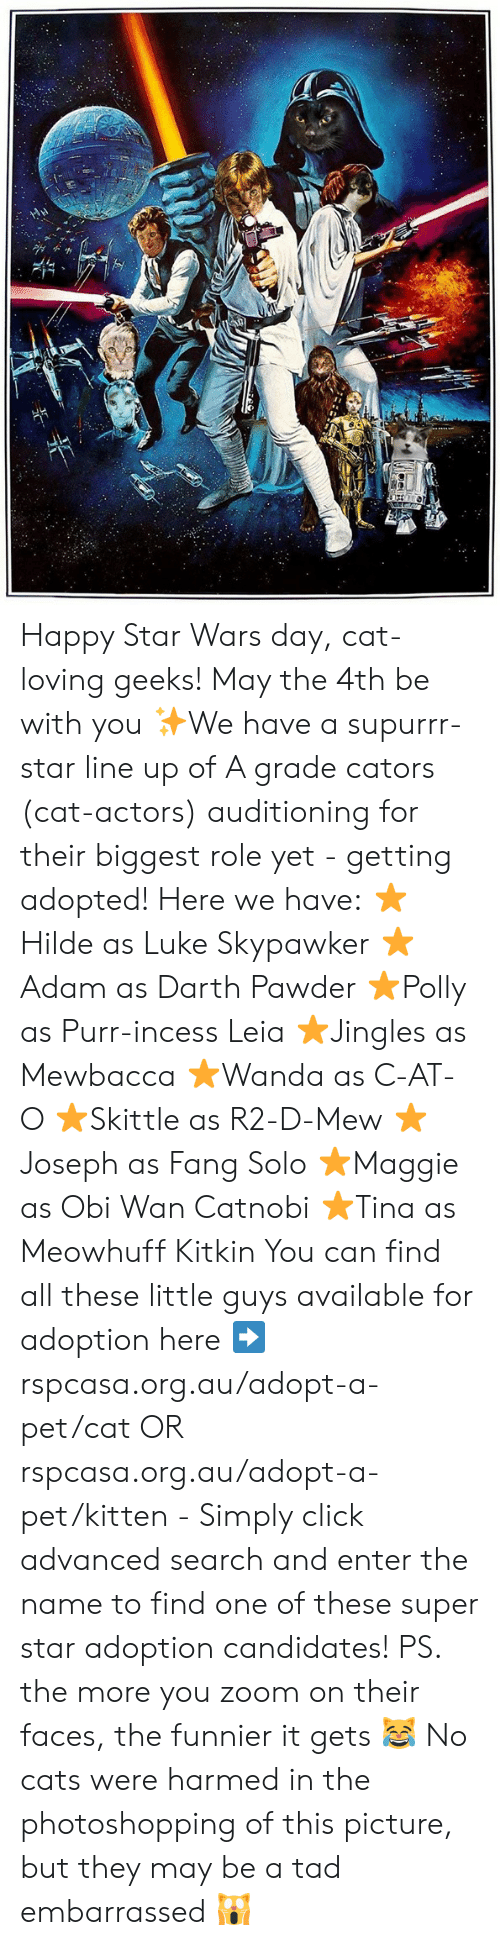 Cats, Click, and Memes: Happy Star Wars day, cat-loving geeks! May the 4th be with you ✨We have a supurrr-star line up of A grade cators (cat-actors) auditioning for their biggest role yet - getting adopted! Here we have: ⭐Hilde as Luke Skypawker ⭐Adam as Darth Pawder ⭐Polly as Purr-incess Leia ⭐Jingles as Mewbacca ⭐Wanda as C-AT-O ⭐Skittle as R2-D-Mew ⭐Joseph as Fang Solo ⭐Maggie as Obi Wan Catnobi ⭐Tina as Meowhuff Kitkin  You can find all these little guys available for adoption here ➡️ rspcasa.org.au/adopt-a-pet/cat OR rspcasa.org.au/adopt-a-pet/kitten - Simply click advanced search and enter the name to find one of these super star adoption candidates!  PS. the more you zoom on their faces, the funnier it gets 😹 No cats were harmed in the photoshopping of this picture, but they may be a tad embarrassed 🙀